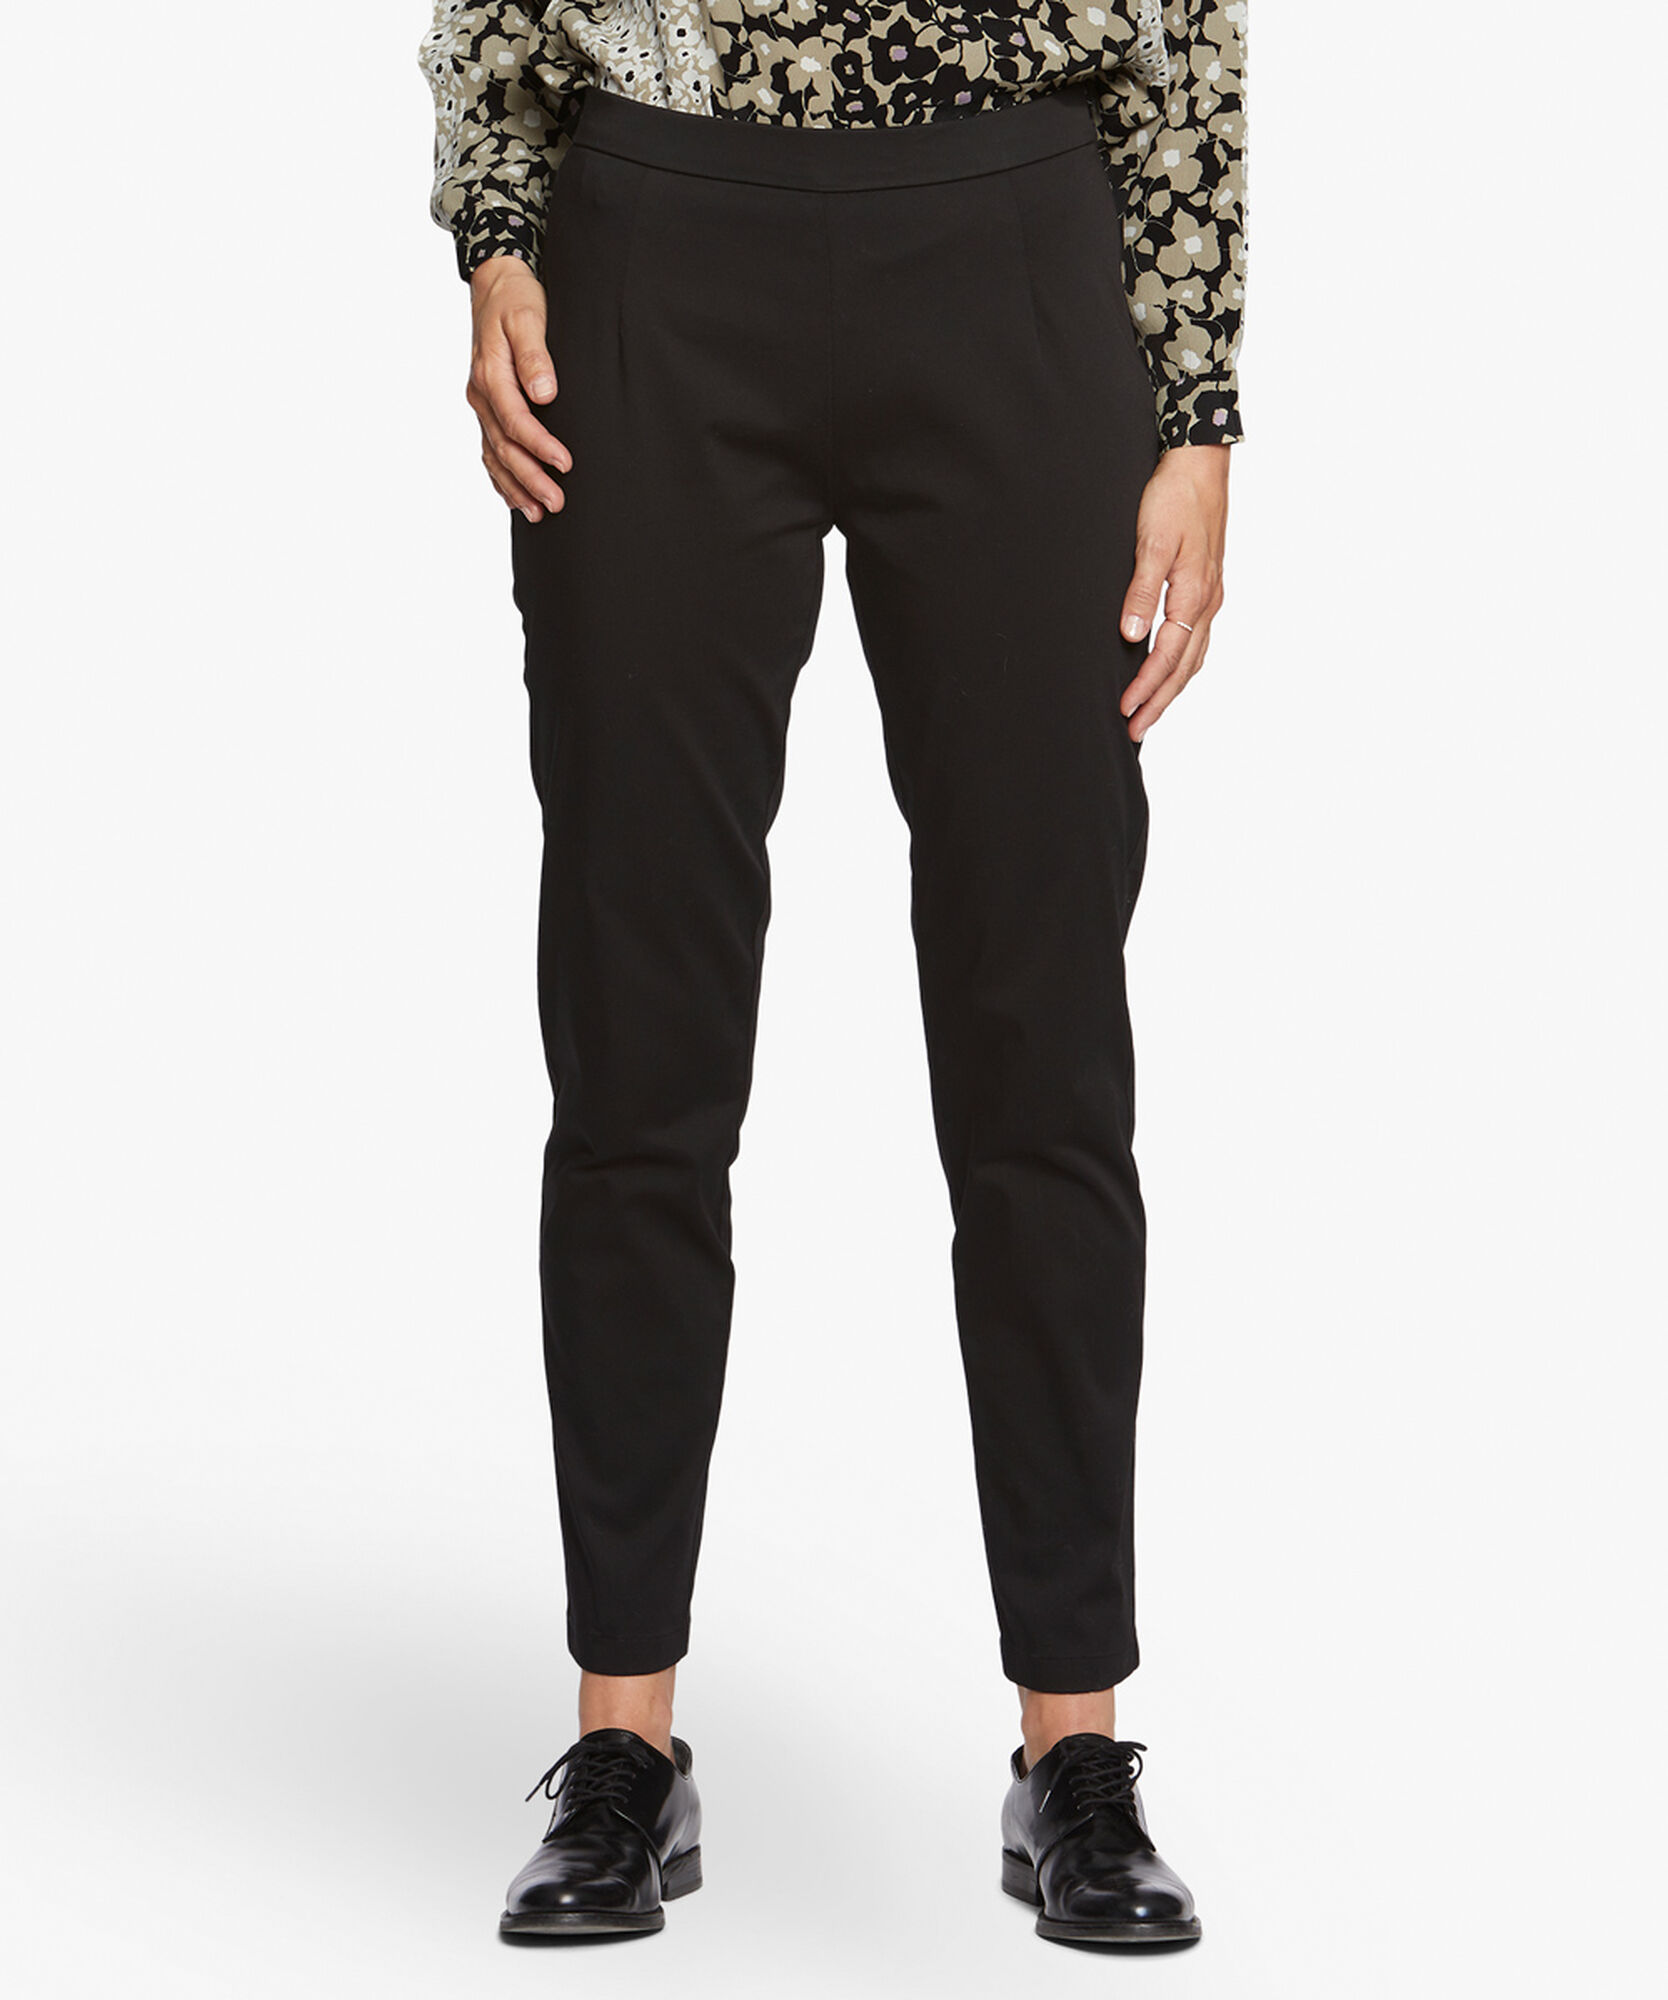 PALAS TROUSERS REGULAR, Black, hi-res